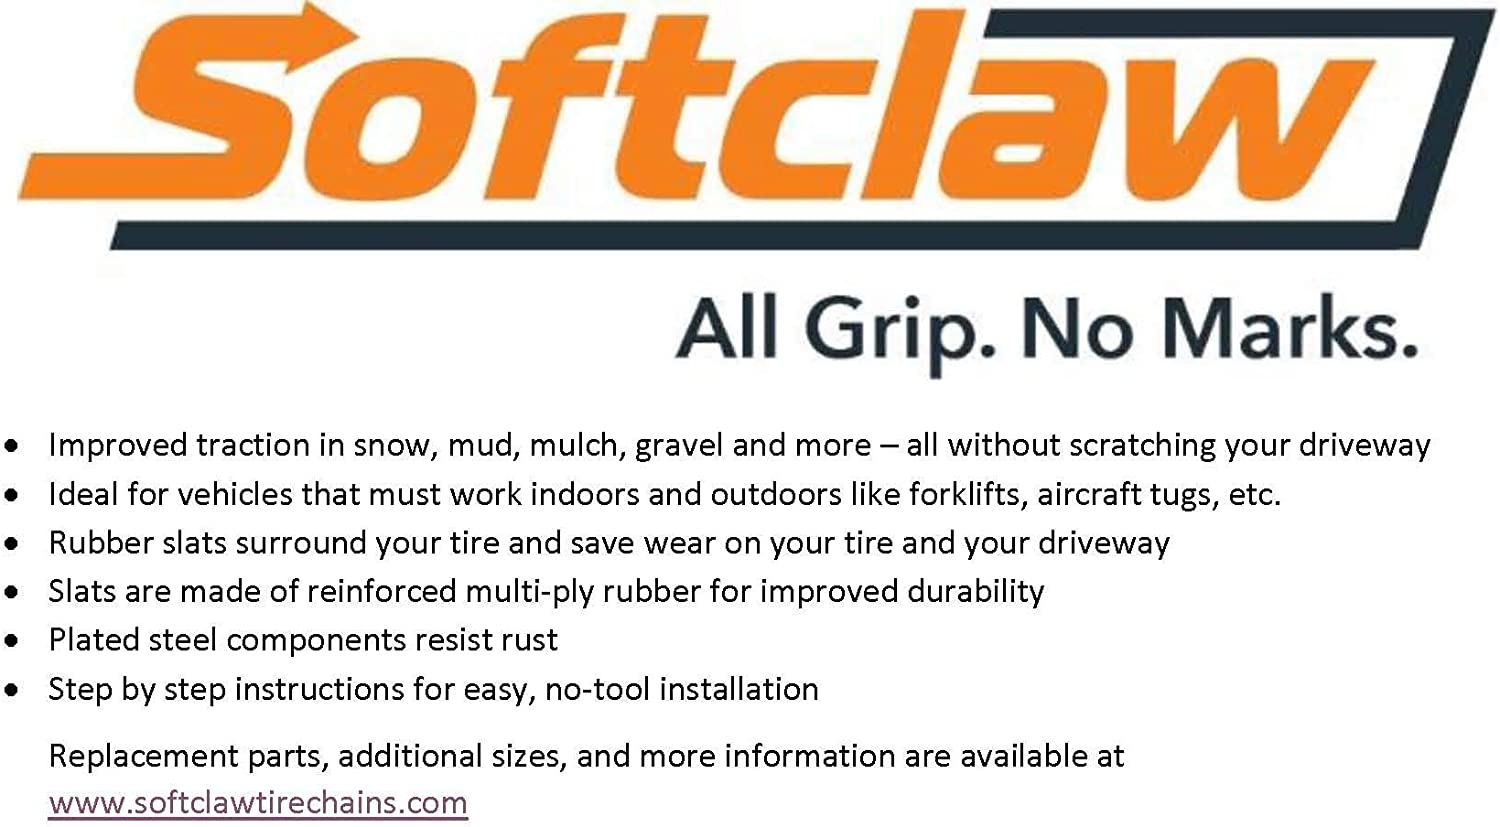 SoftClaw Rubber Tire Chains 26x12.00-12